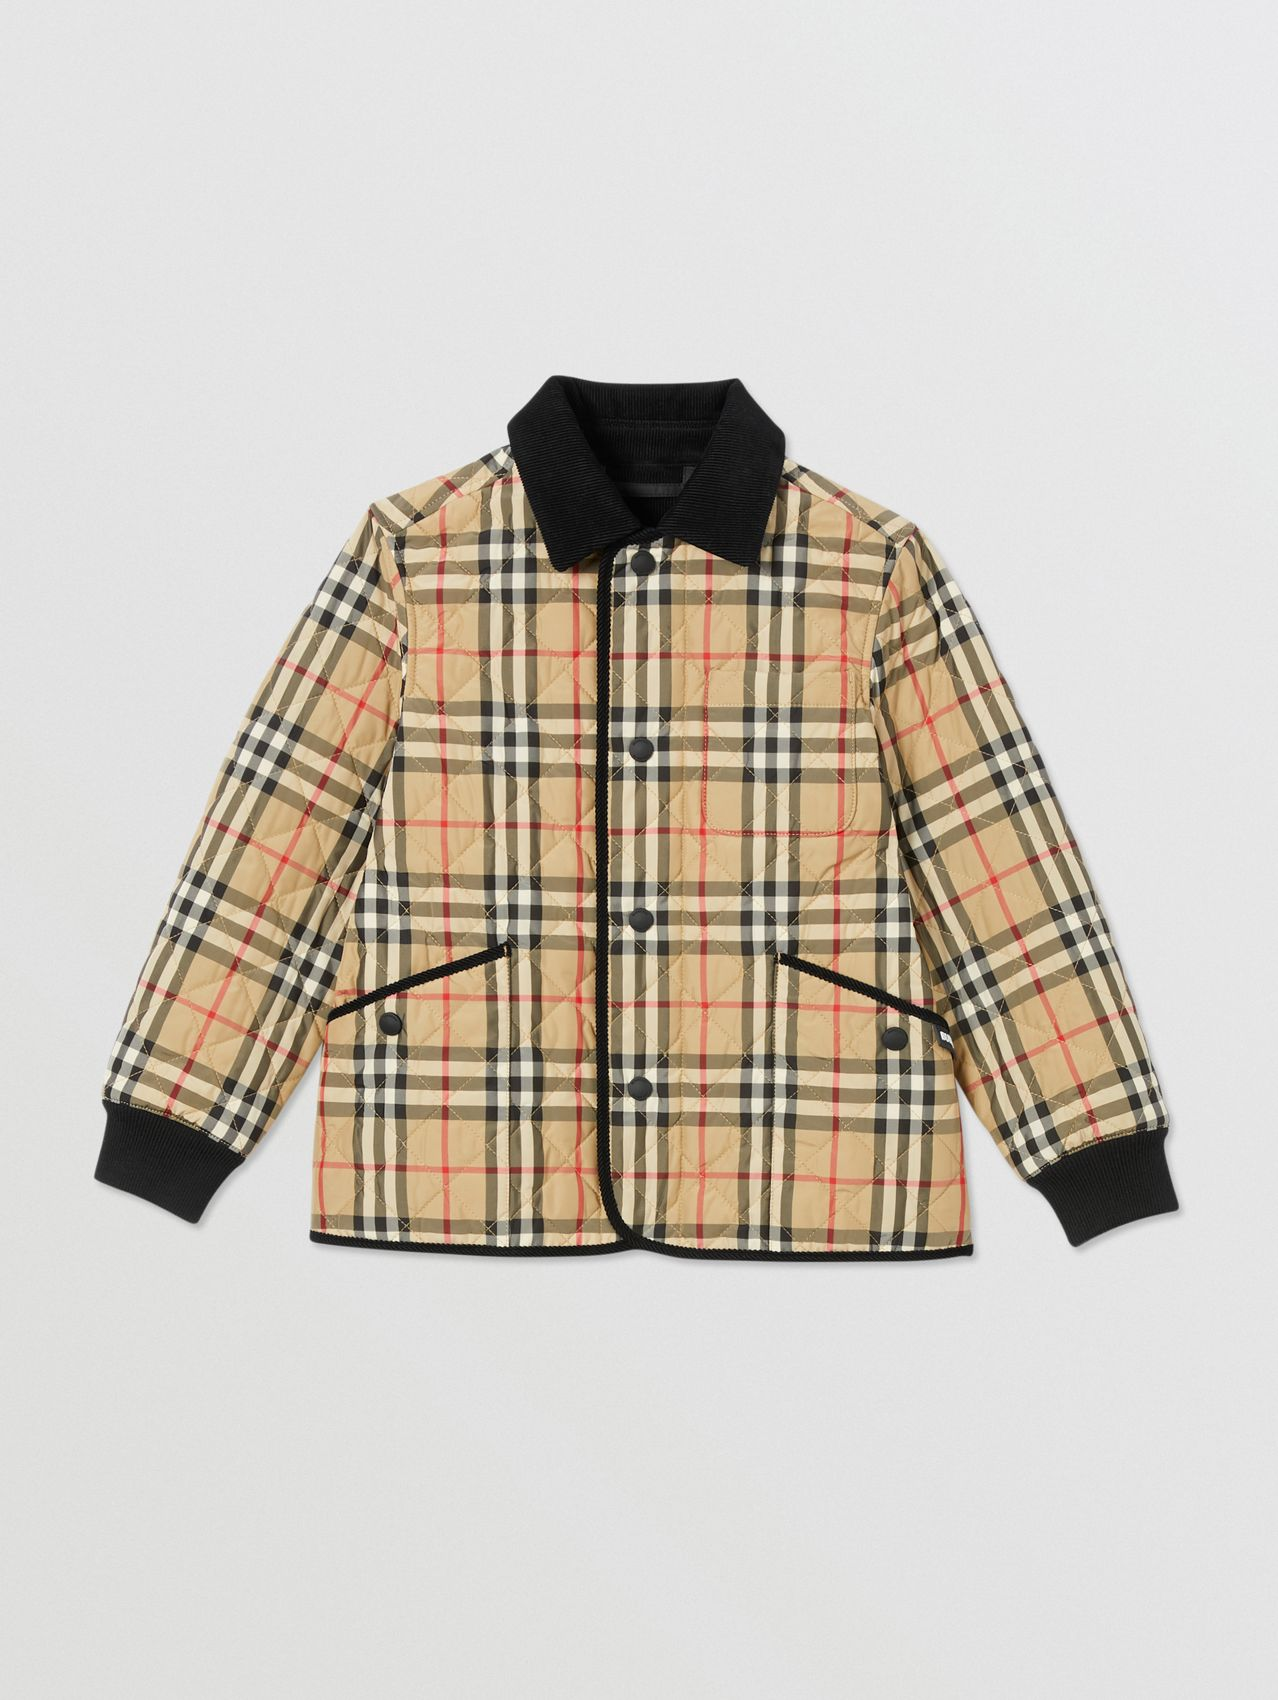 Corduroy Trim Vintage Check Diamond Quilted Jacket (Archive Beige)